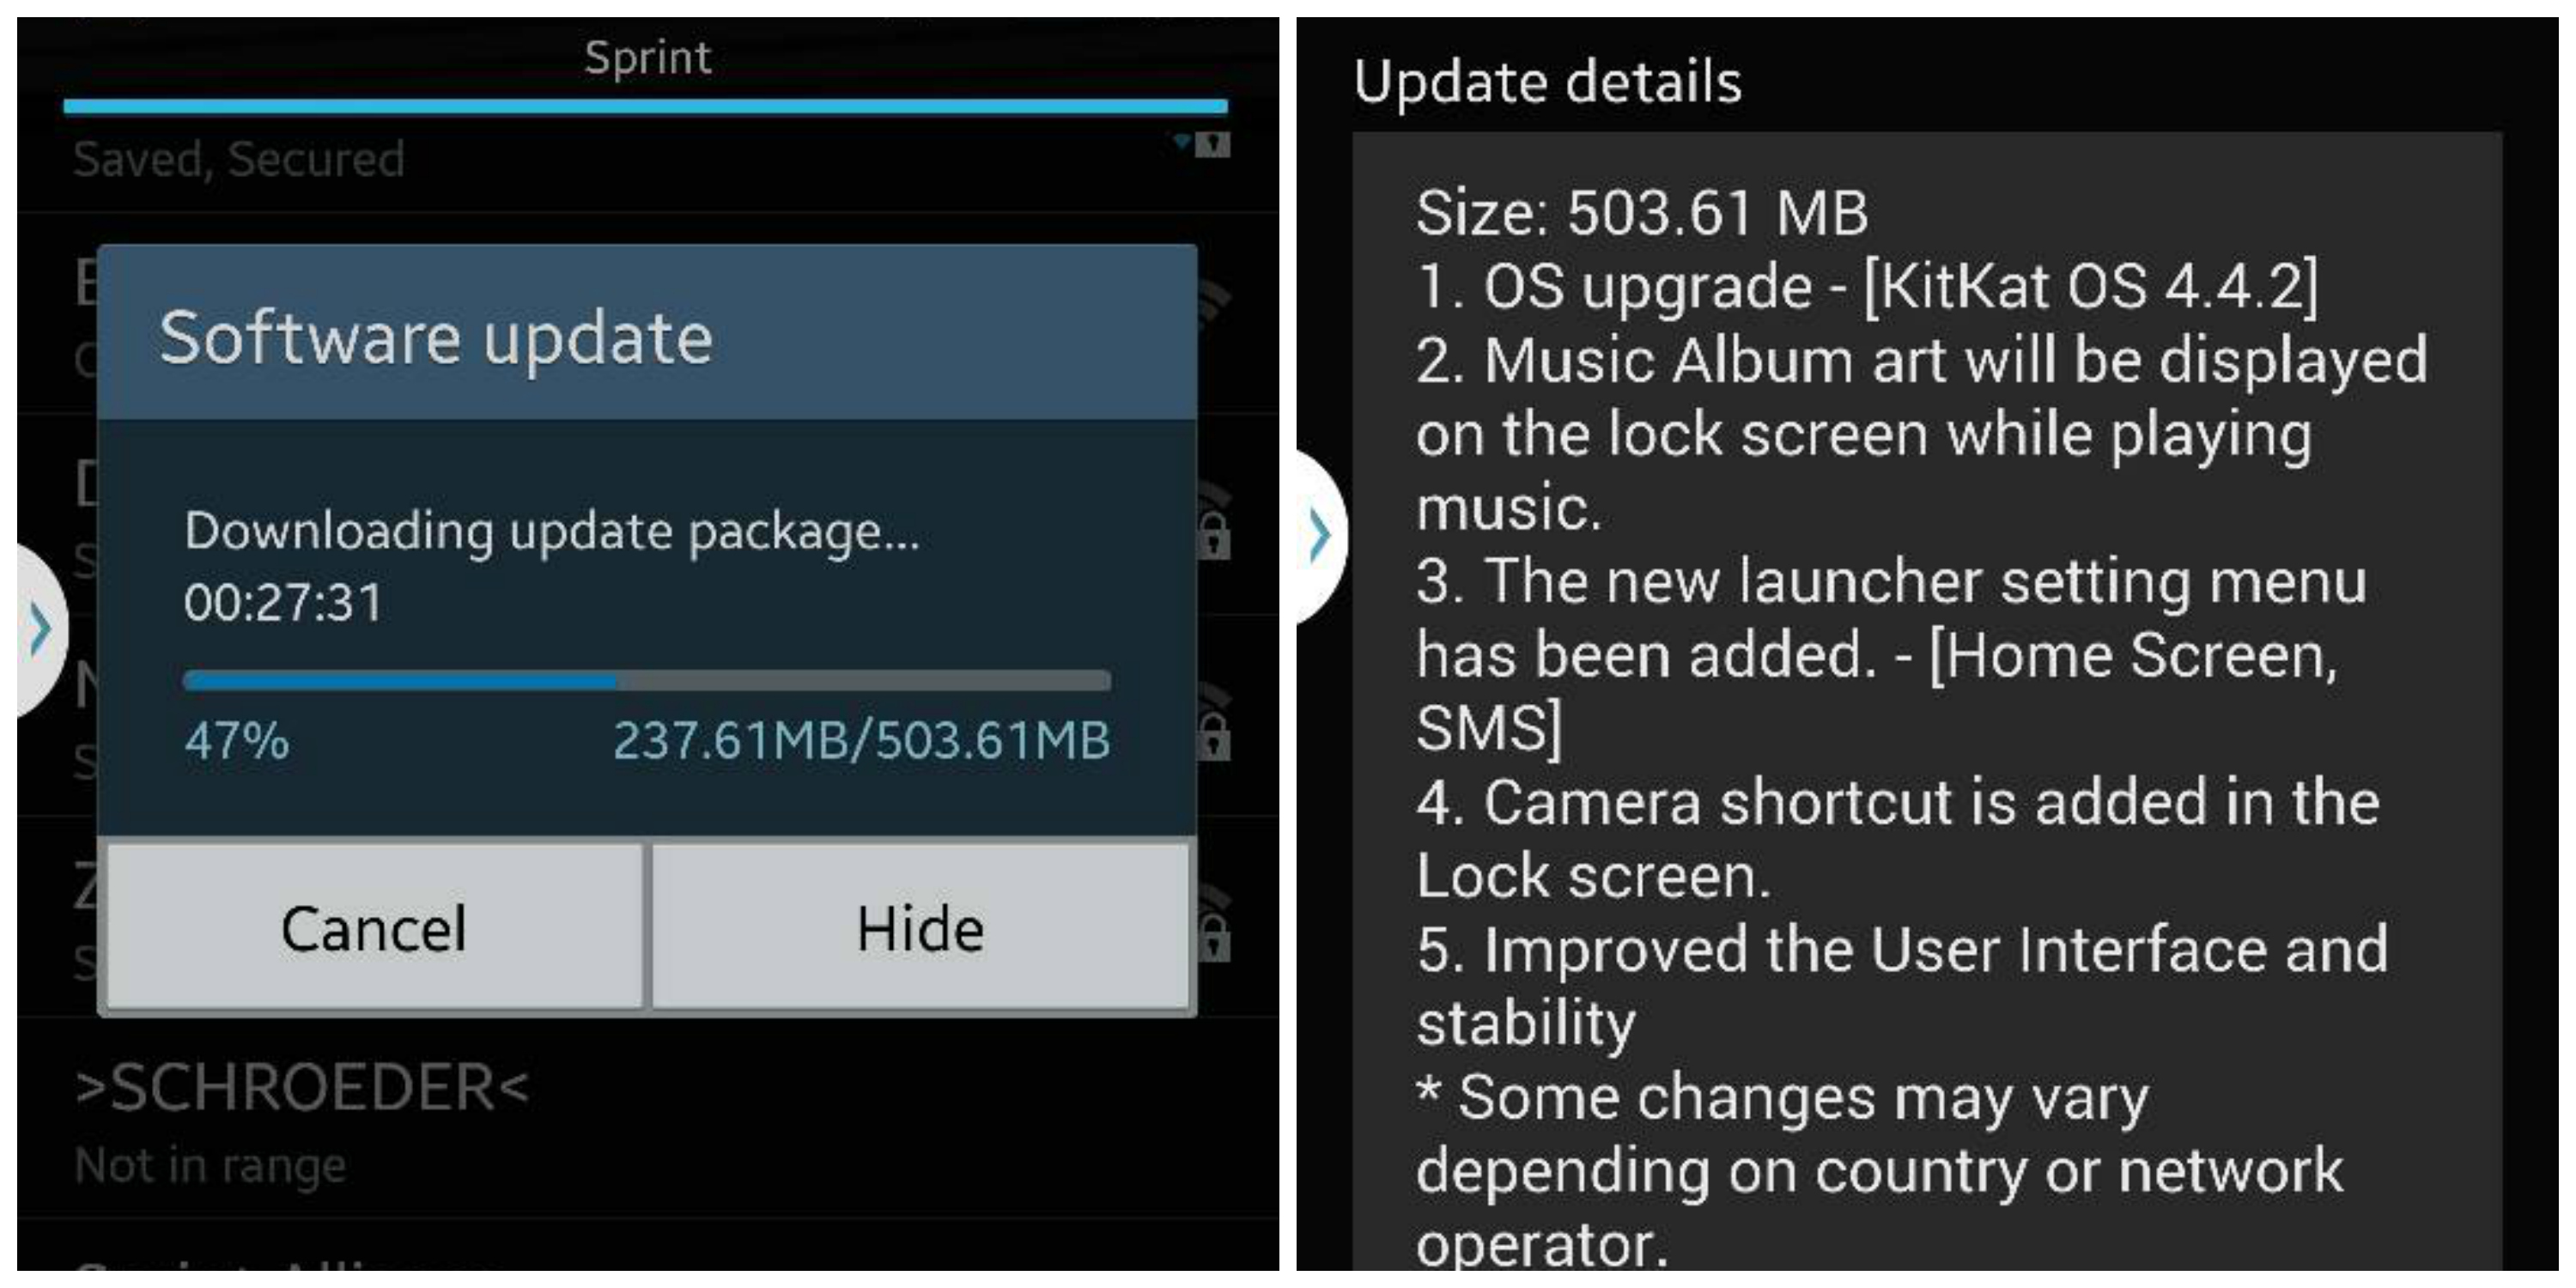 Sprint Samsung Galaxy Note 3 KitKat upgrade rolling out